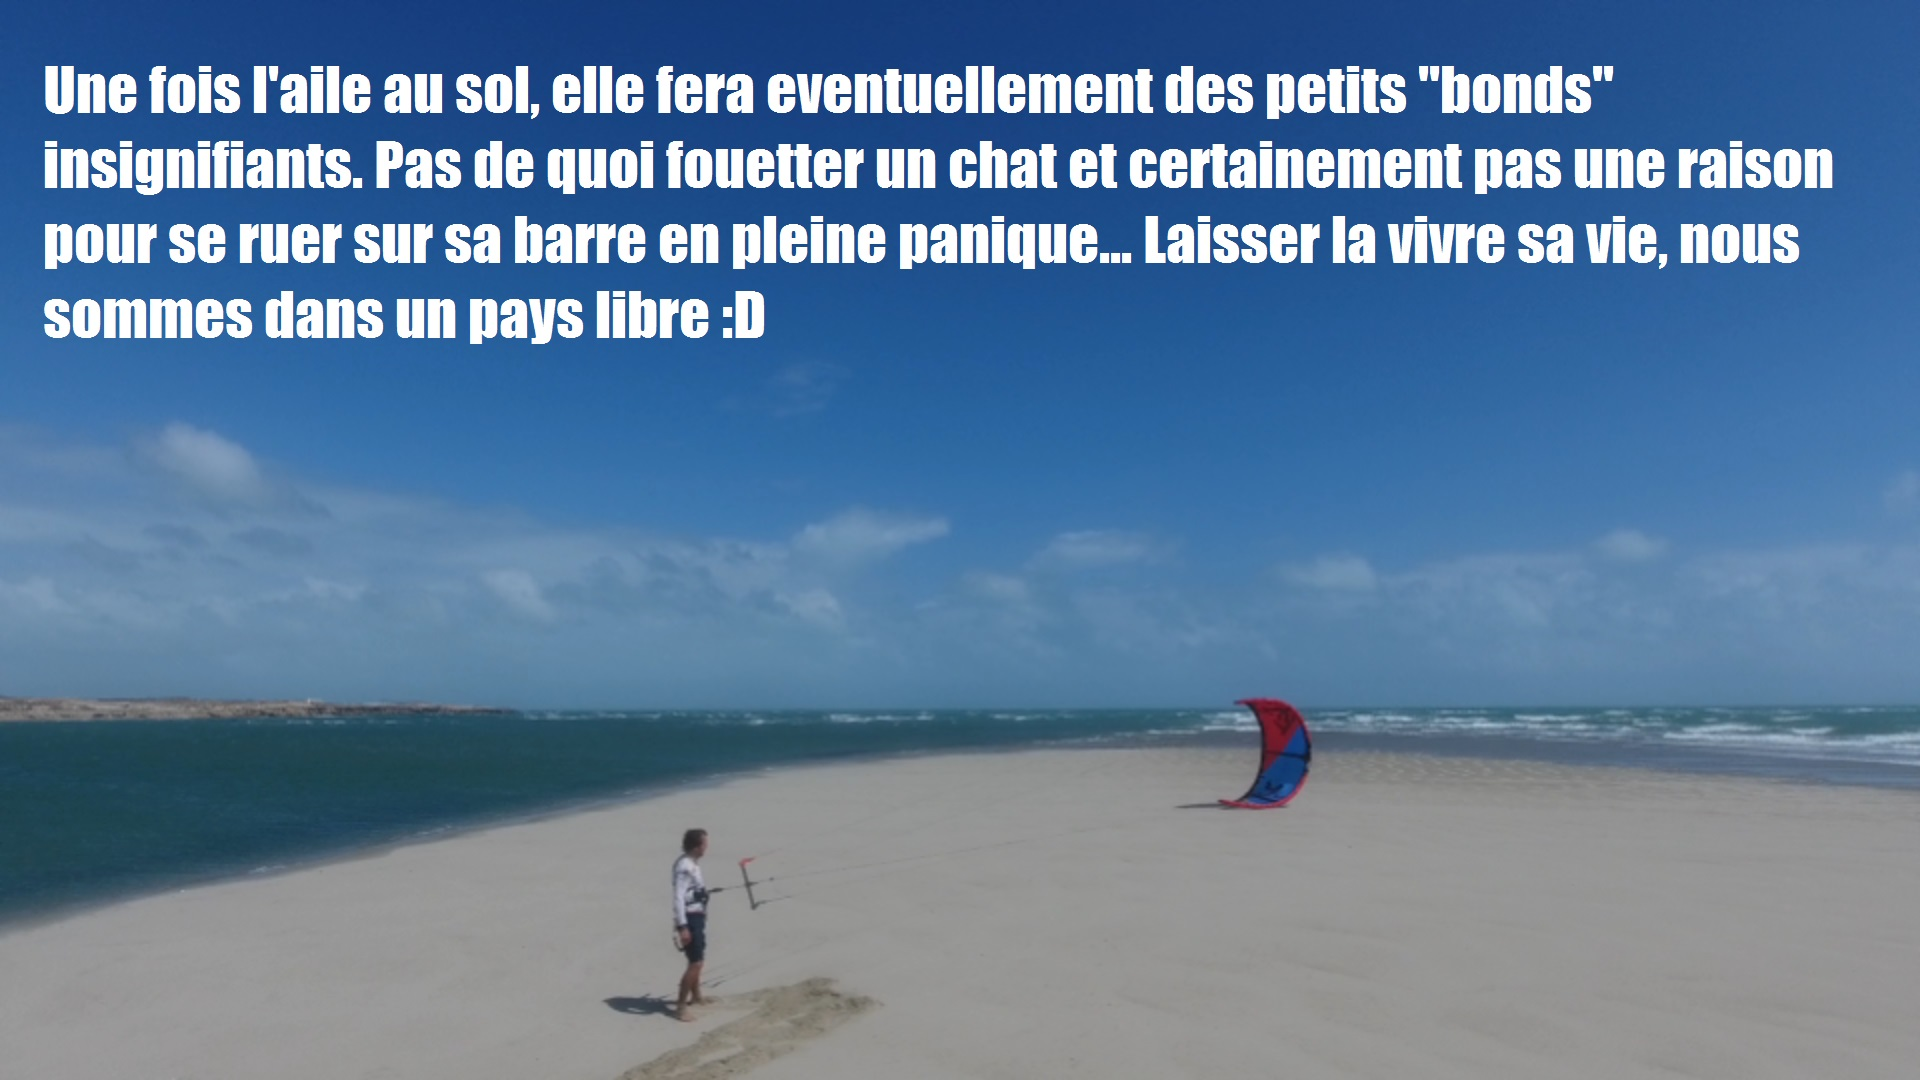 securite kitesurf